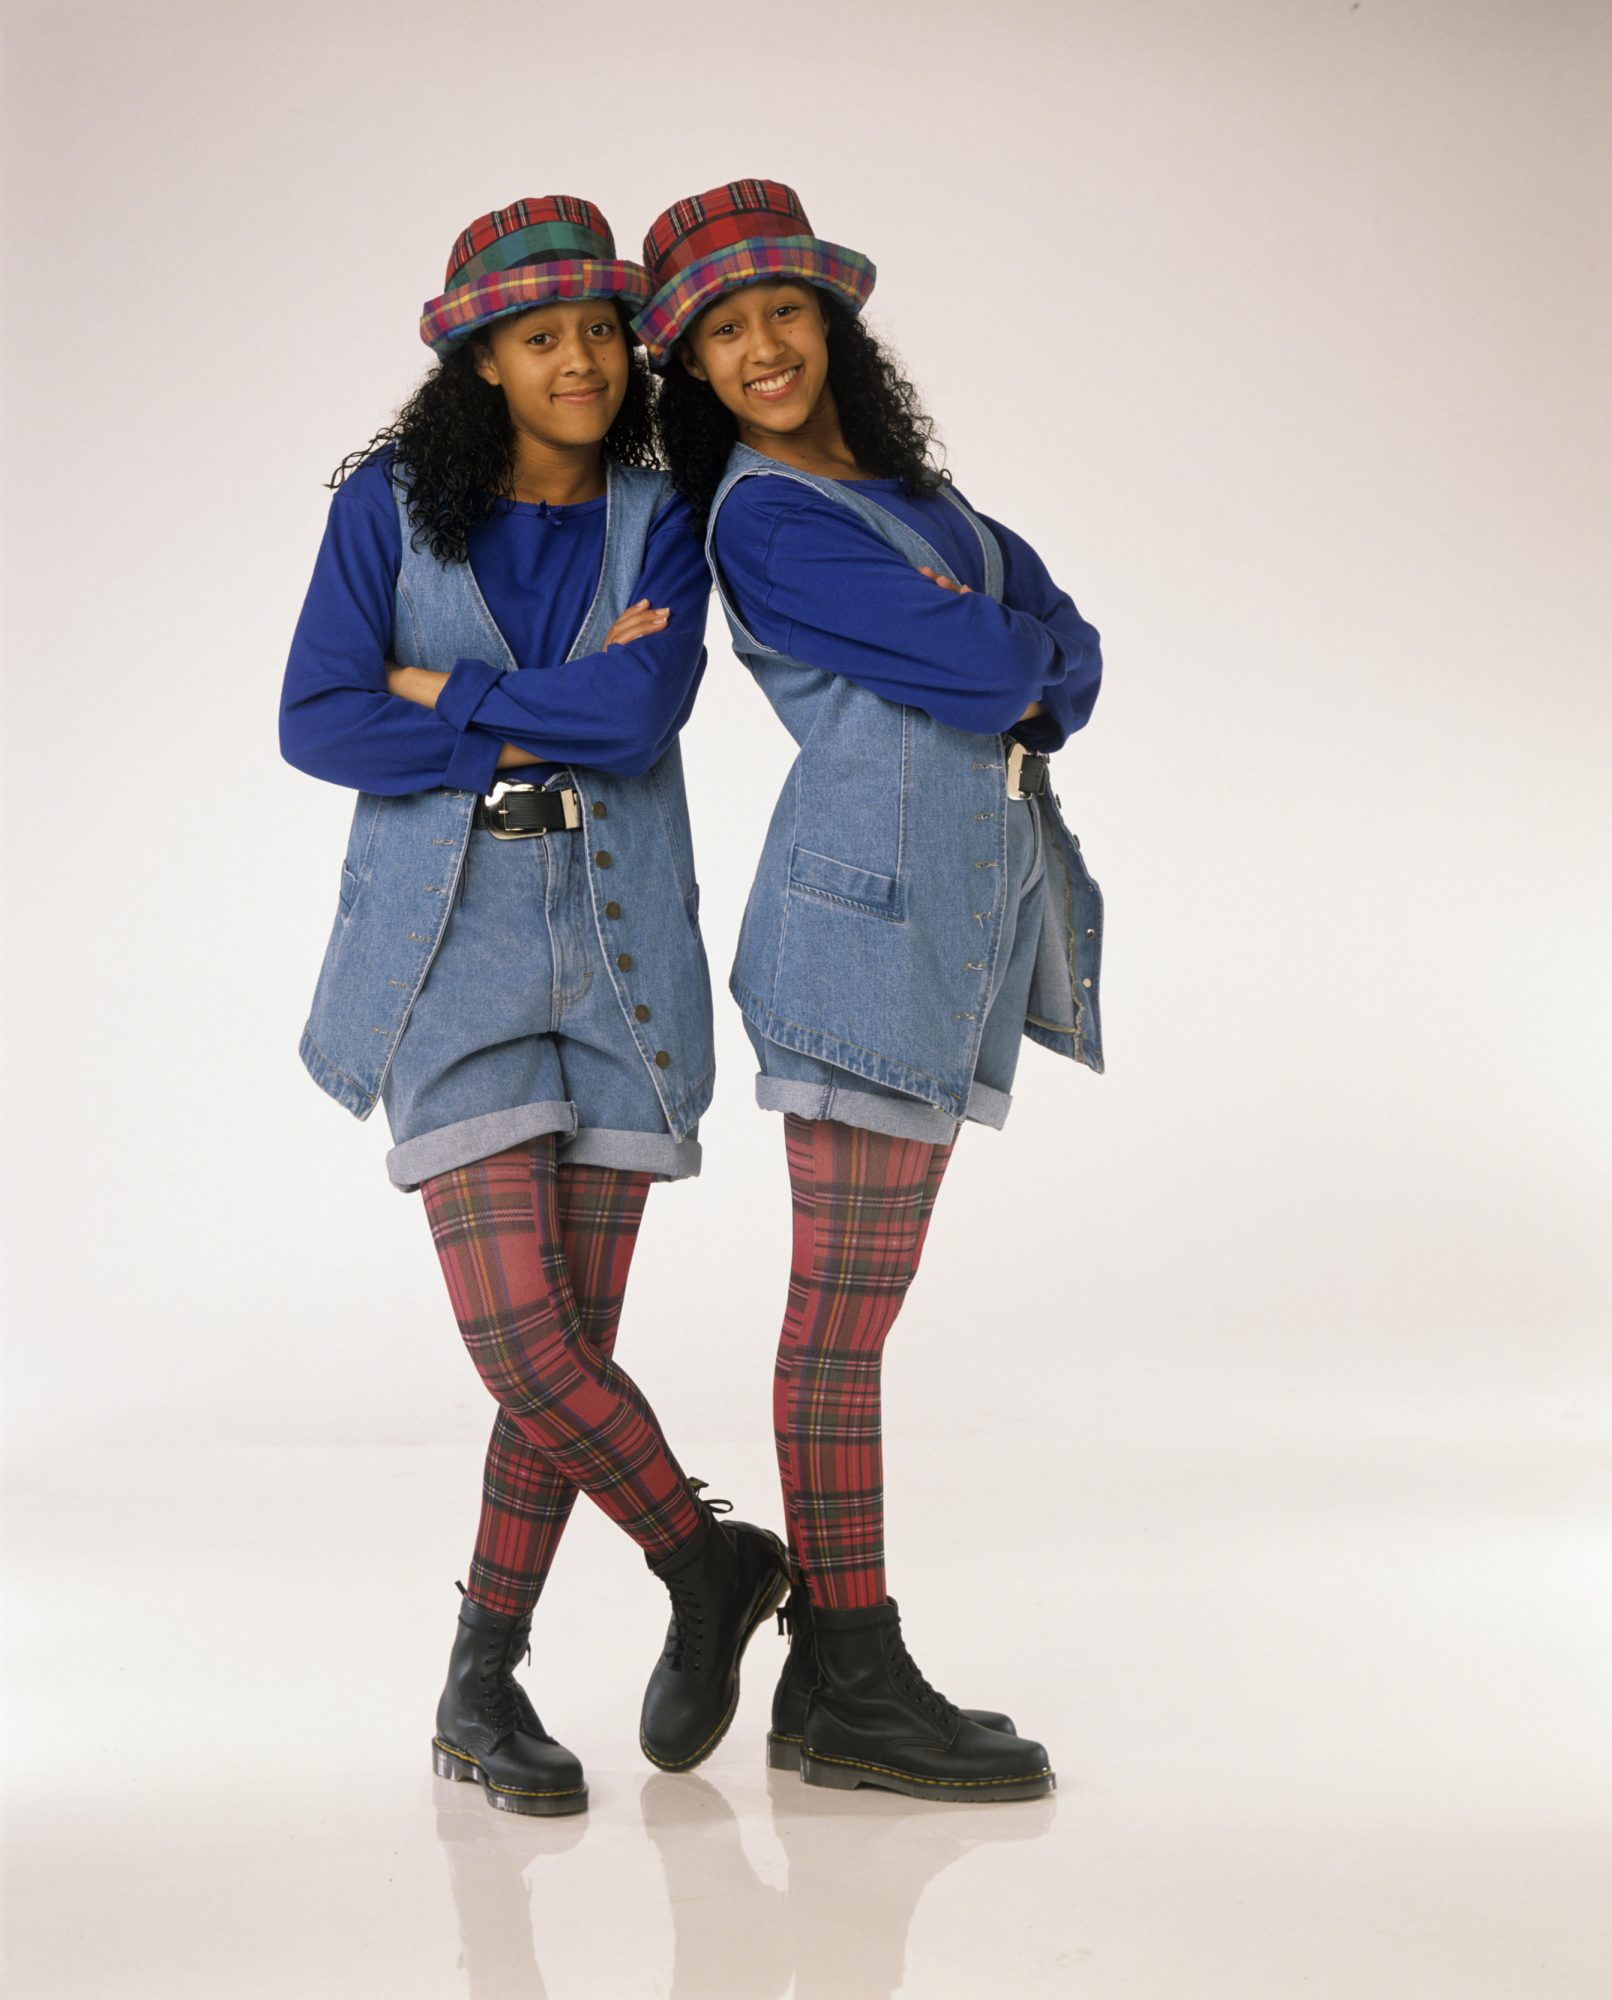 Tia and Tamera Mowry as Tia Landry and Tamera Campbell From Sister, Sister